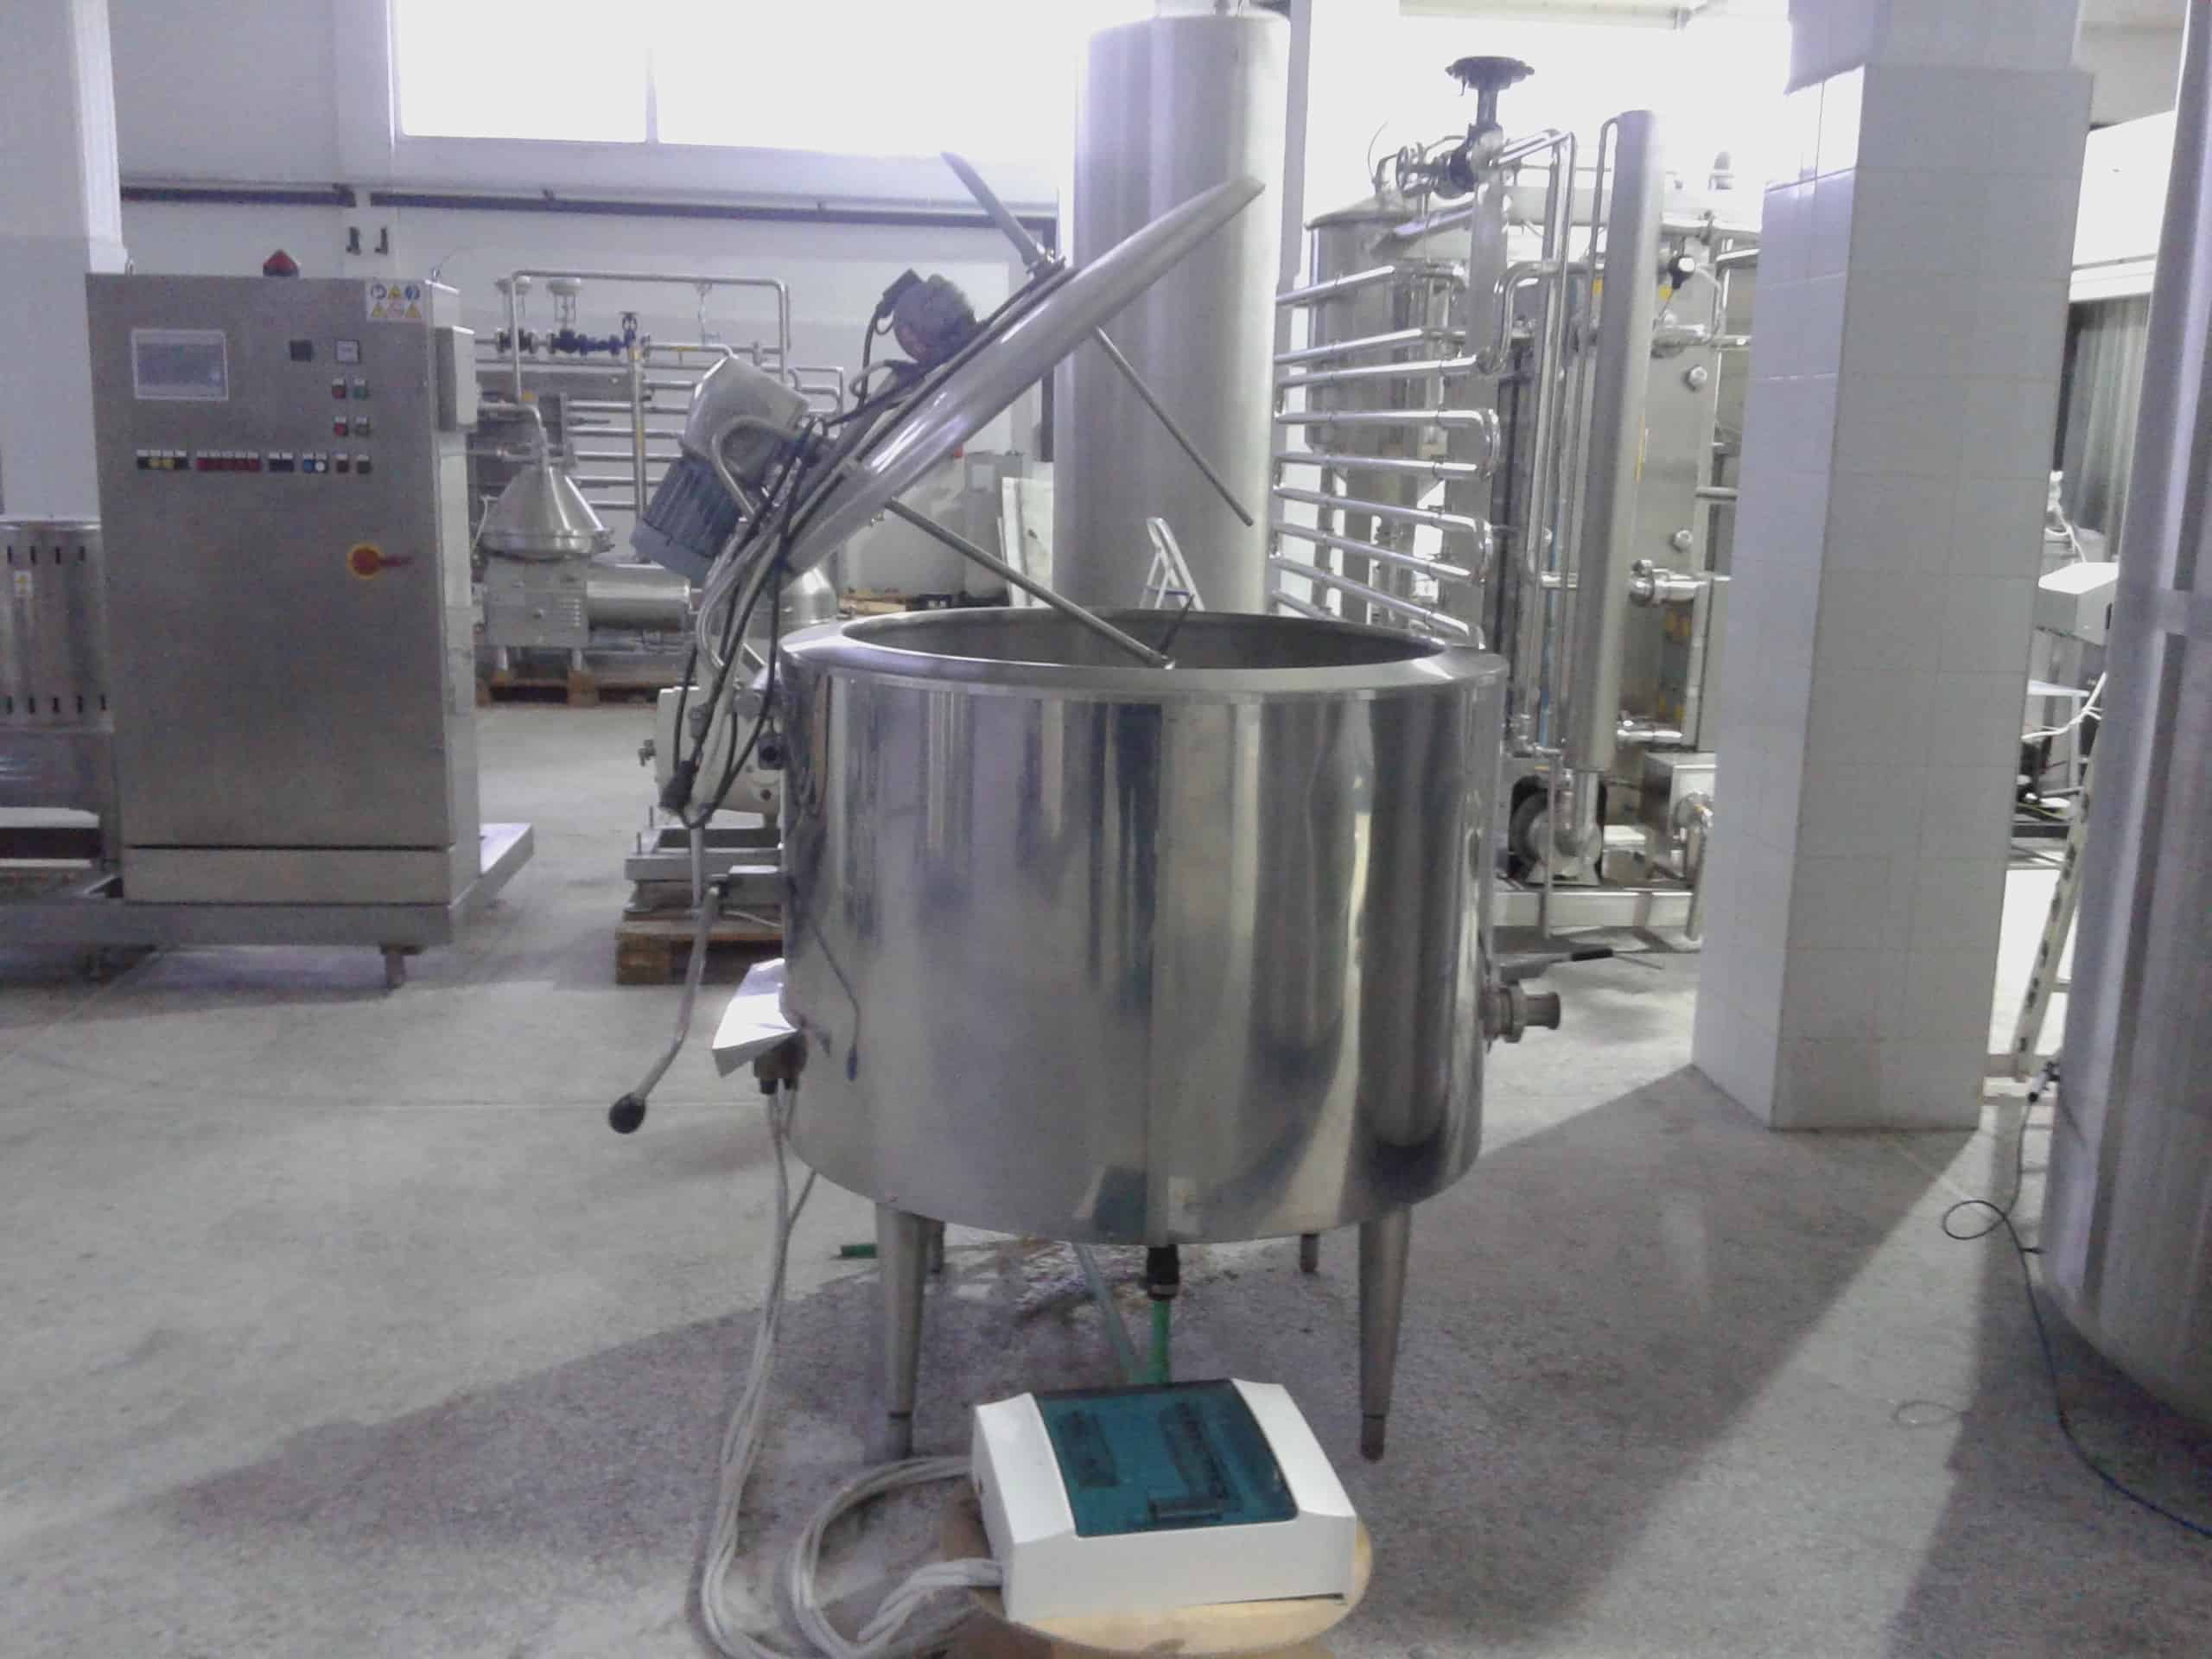 380 Liter S/S Processor / Batch Pasteurizer, Equipped with Top-Mount Prop Agitation, Hinged-Lid, All S/S